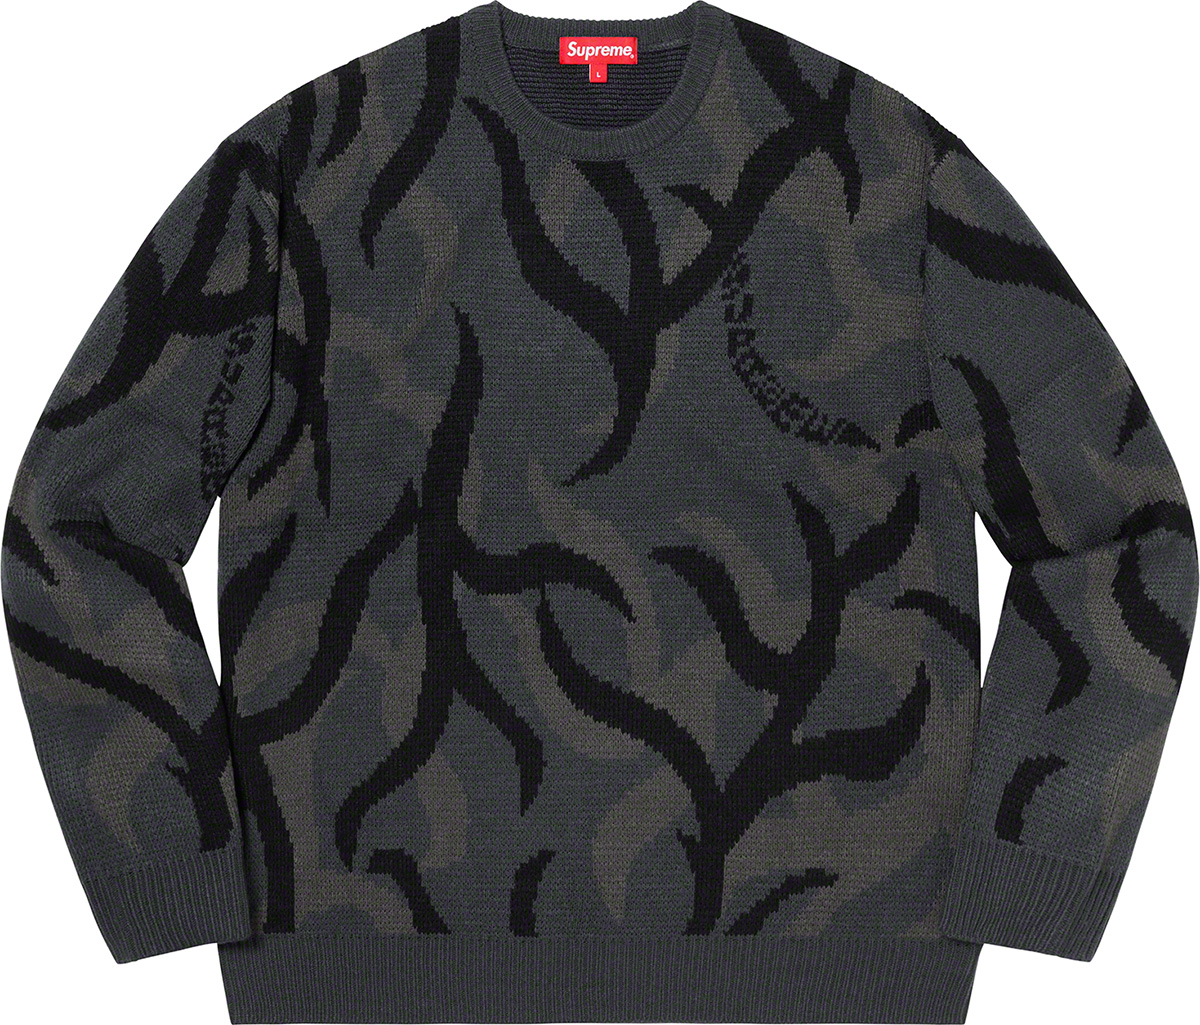 supreme-19aw-19fw-fall-winter-tribal-camo-sweater